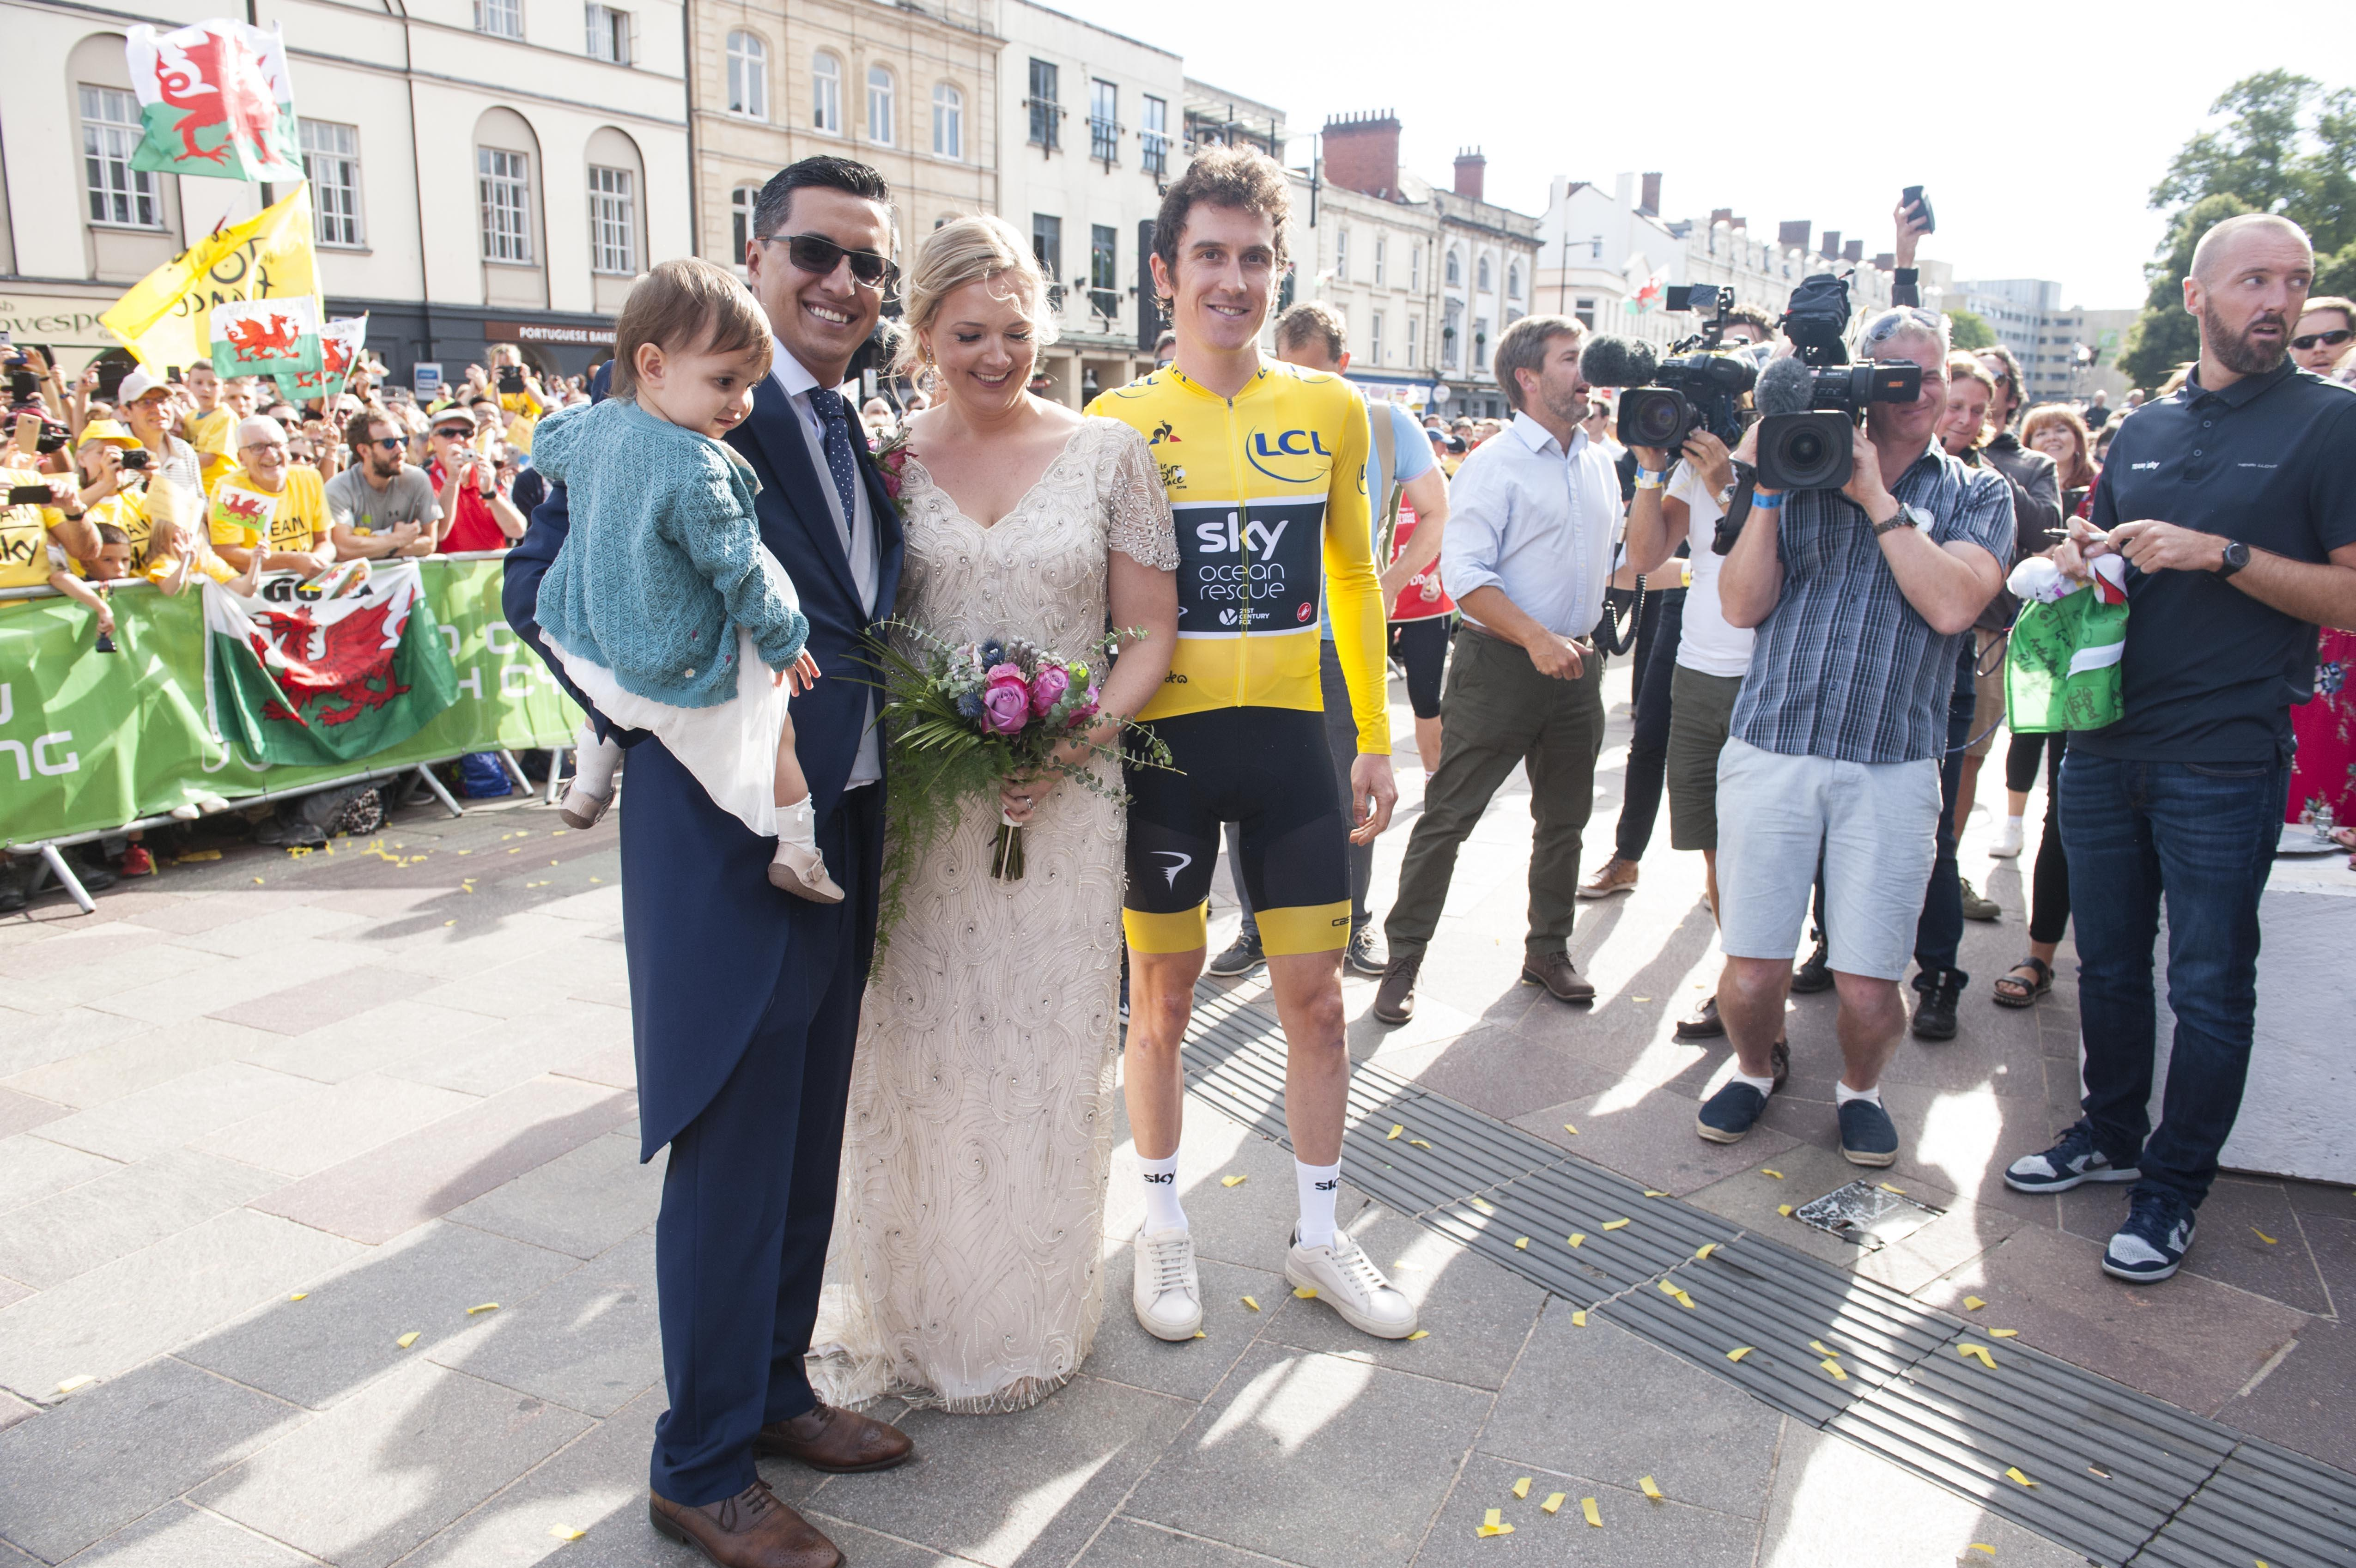 Geraint Thomas posed with a newly-married couple in Cardiff as he celebrated his Tour de France homecoming